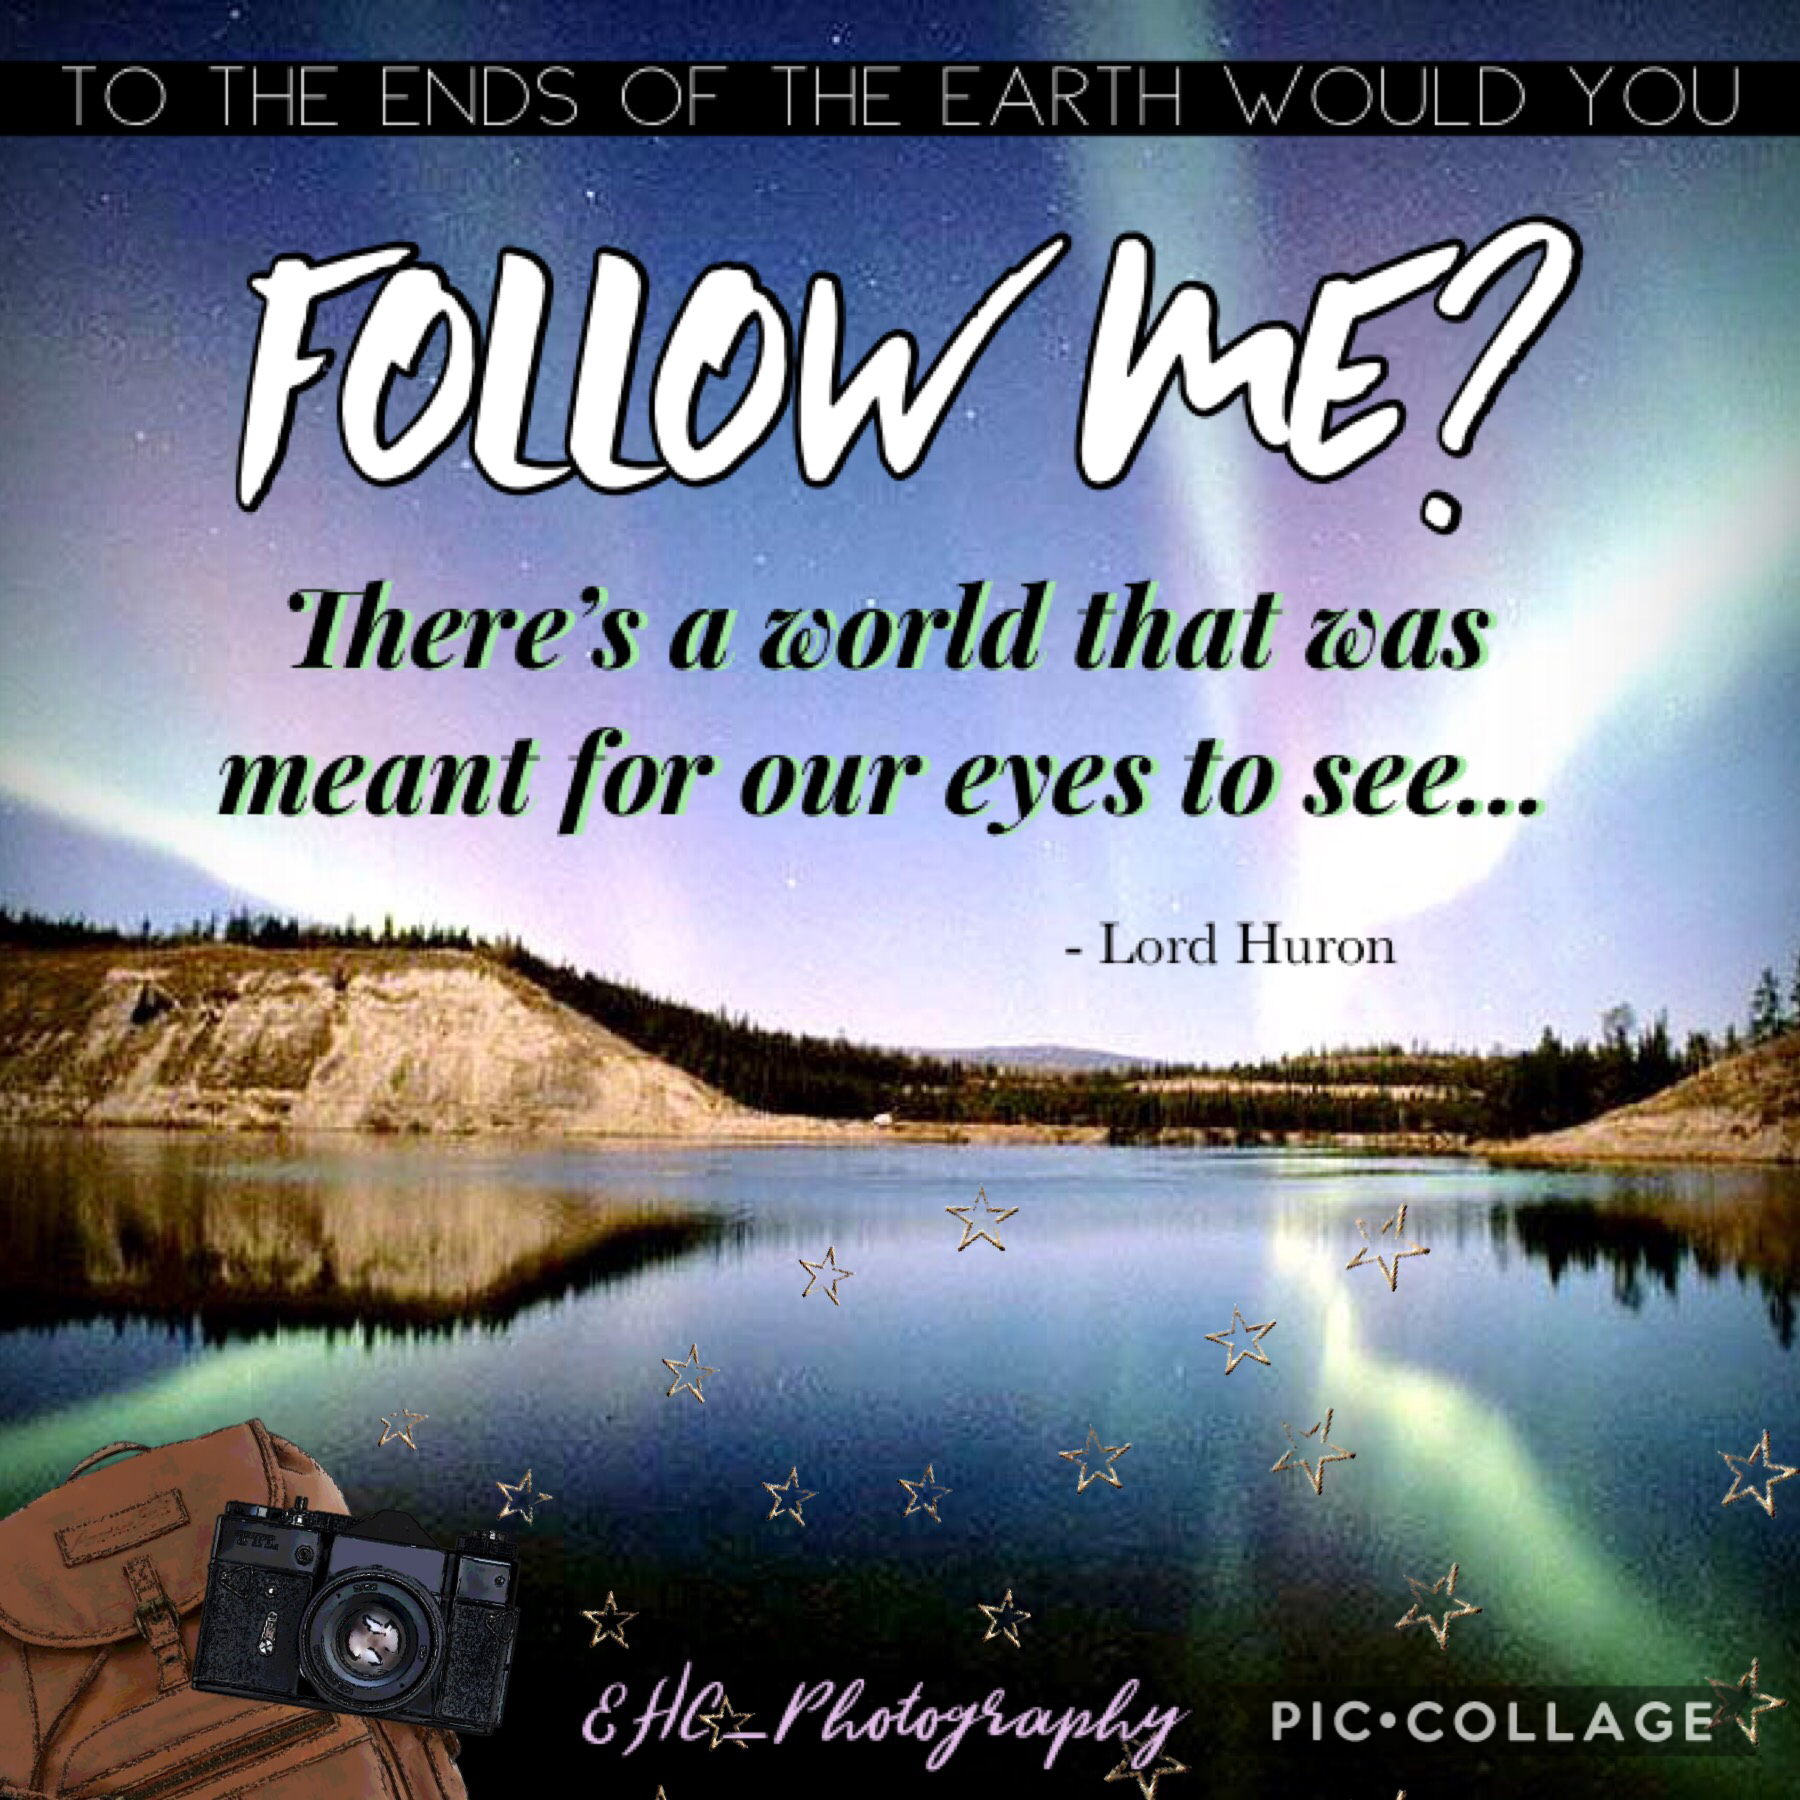 Early SOTW! 🌏 🎶 🌌 My cousin's 16th b-day party was Saturday, we went sledding (not much) and snowmobiling; I slept over too. 🛷 🎂 💐 🎁 ❄️ We also saw HTTYD: THW that night, and we got pizza. 🎞 🐲 🍿 🍬 🥤 🍕 The movie was good, it was really funny. 😂